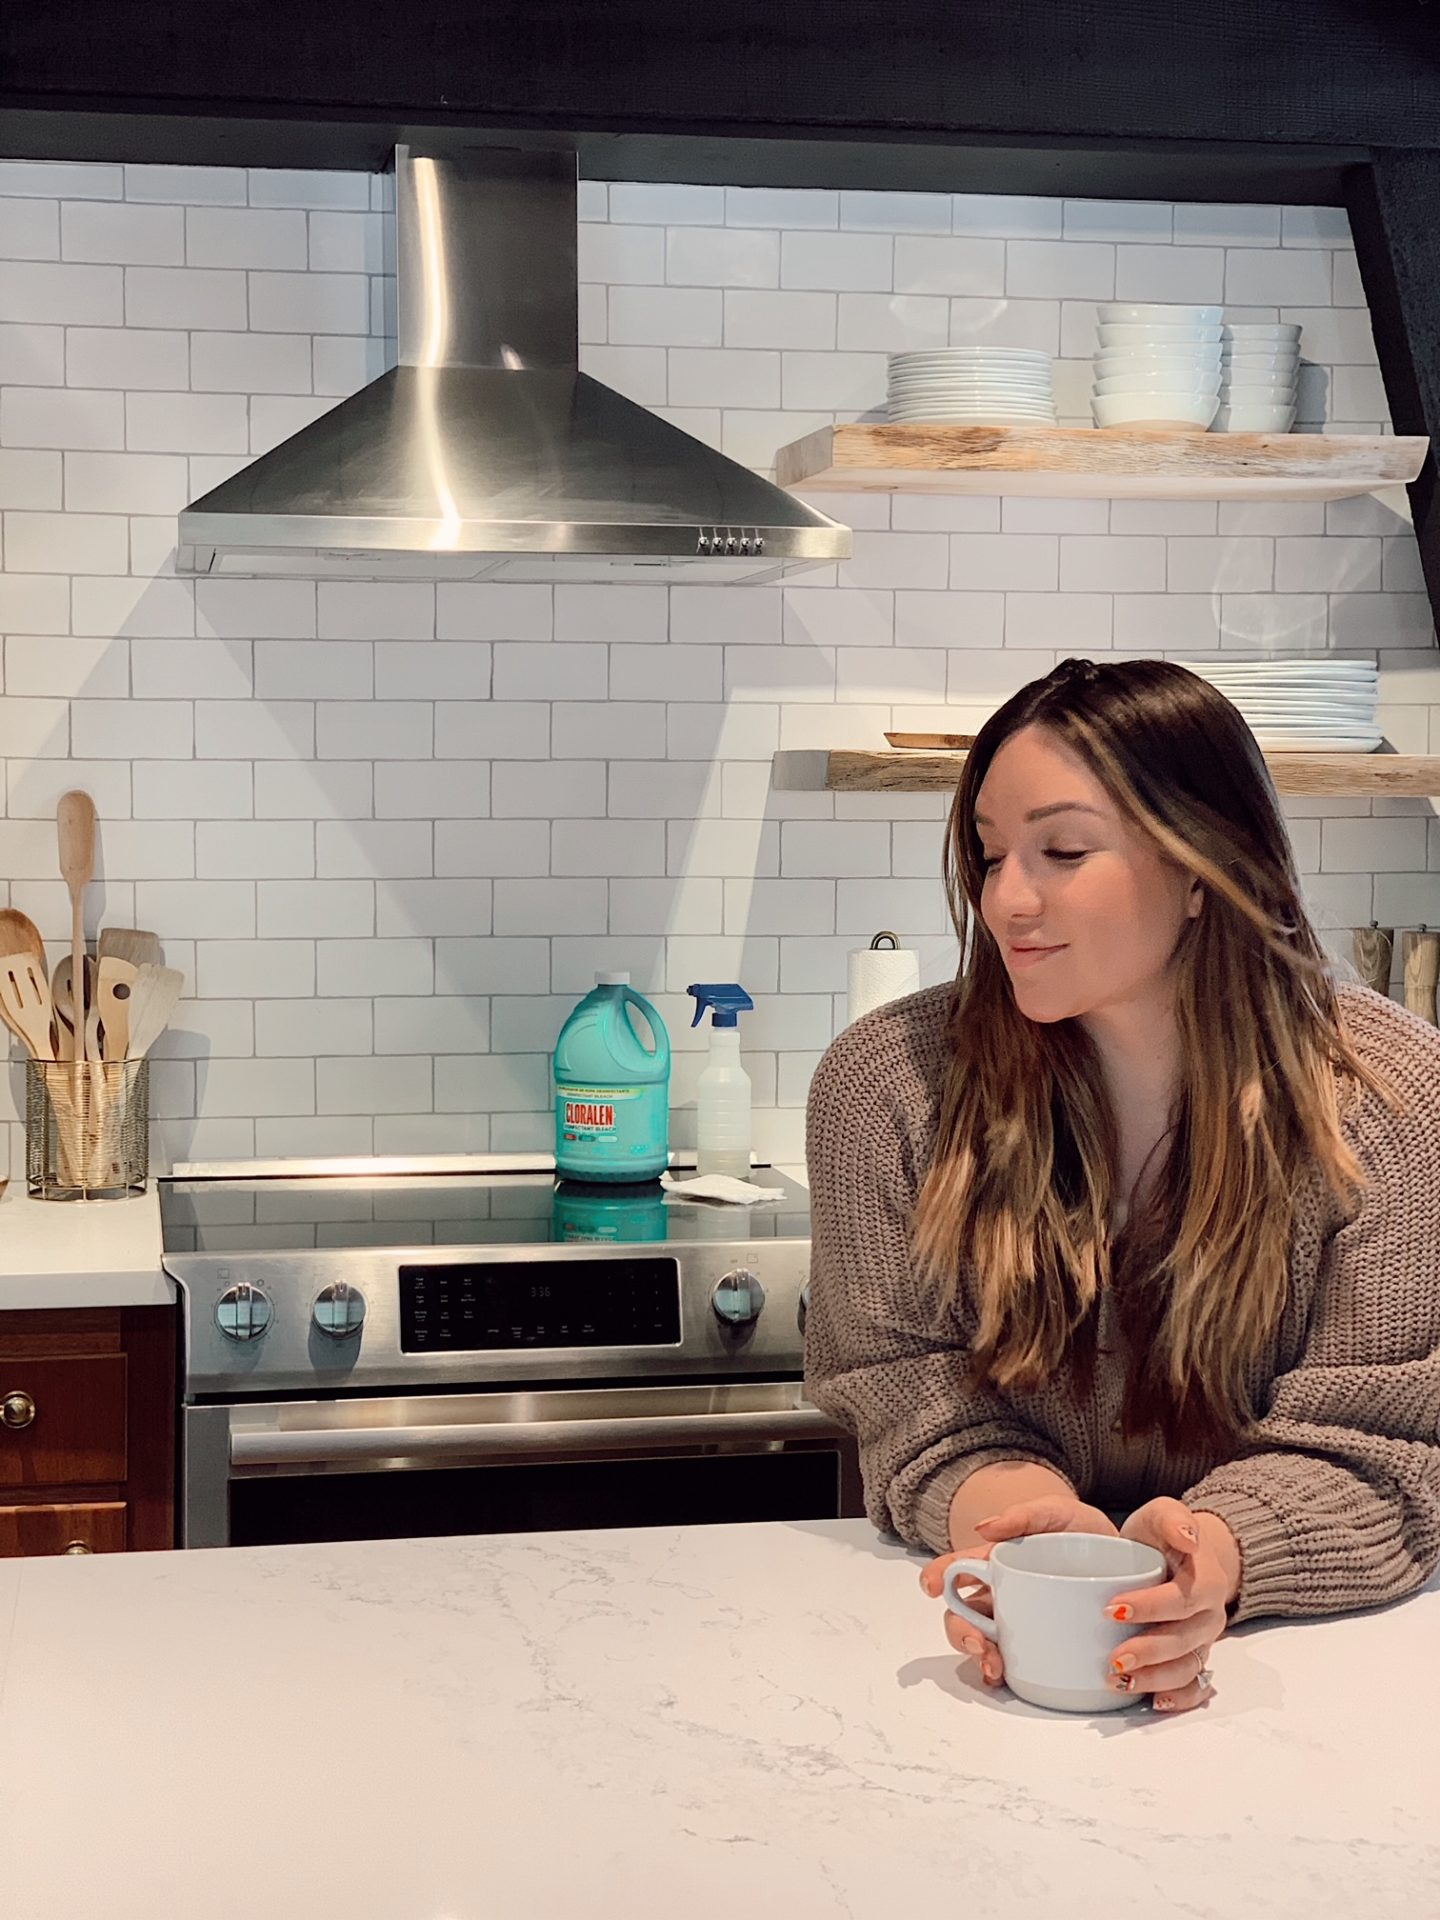 Cleaning with CLORALEN |Spring Cleaning Tips by popular San Francisco lifestyle blog, Just Add Glam: image of woman holding a ceramic mug and leaning on her kitchen counter.